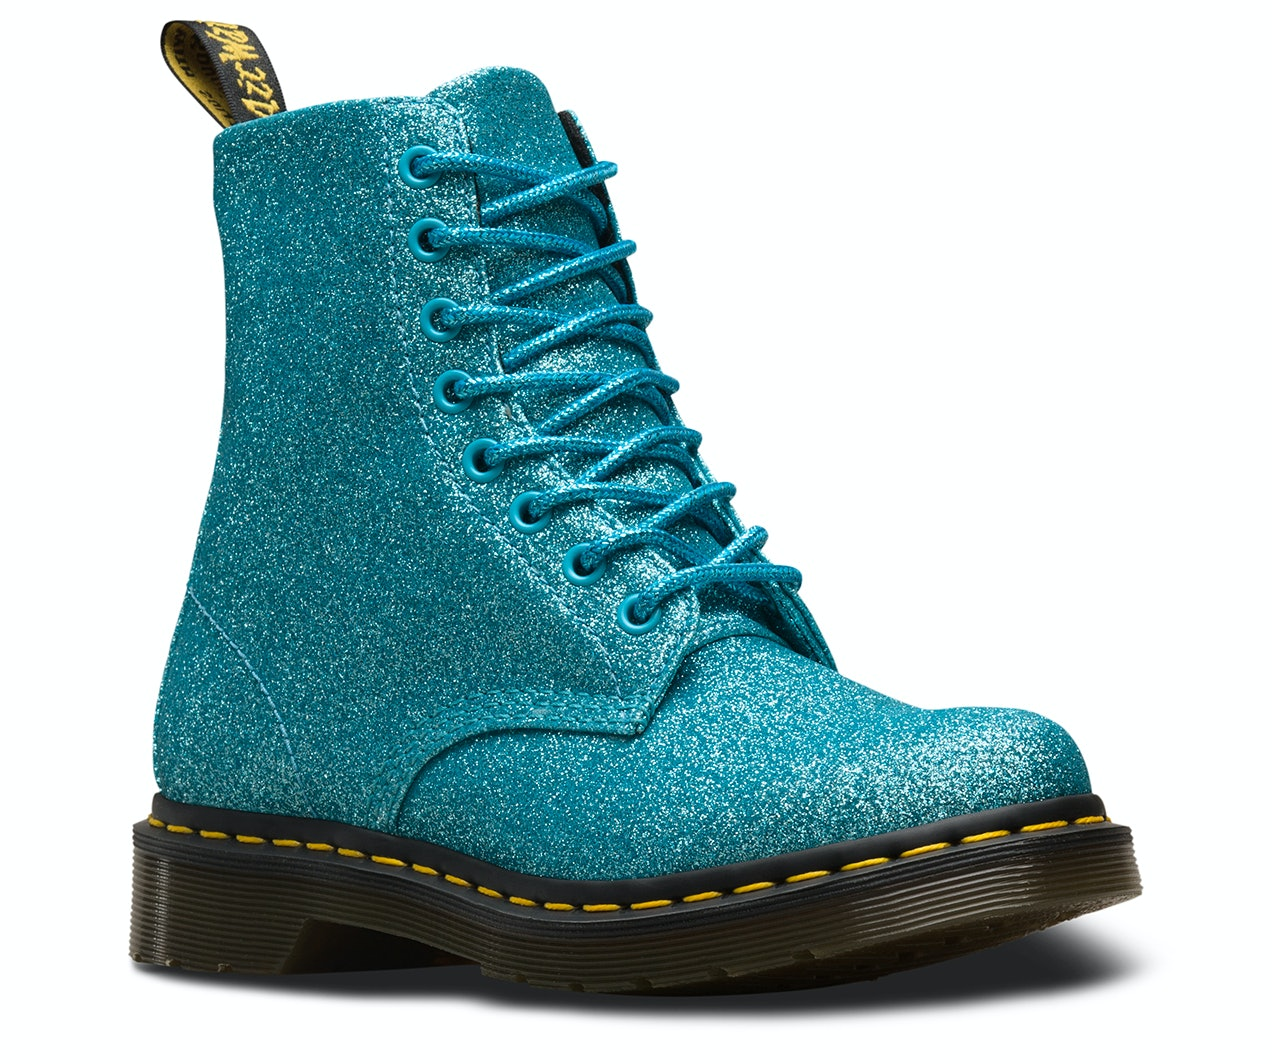 8c69e6e12e Dr. Martens Glittery Pascal Boots Will Literally Give You Twinkle Toes